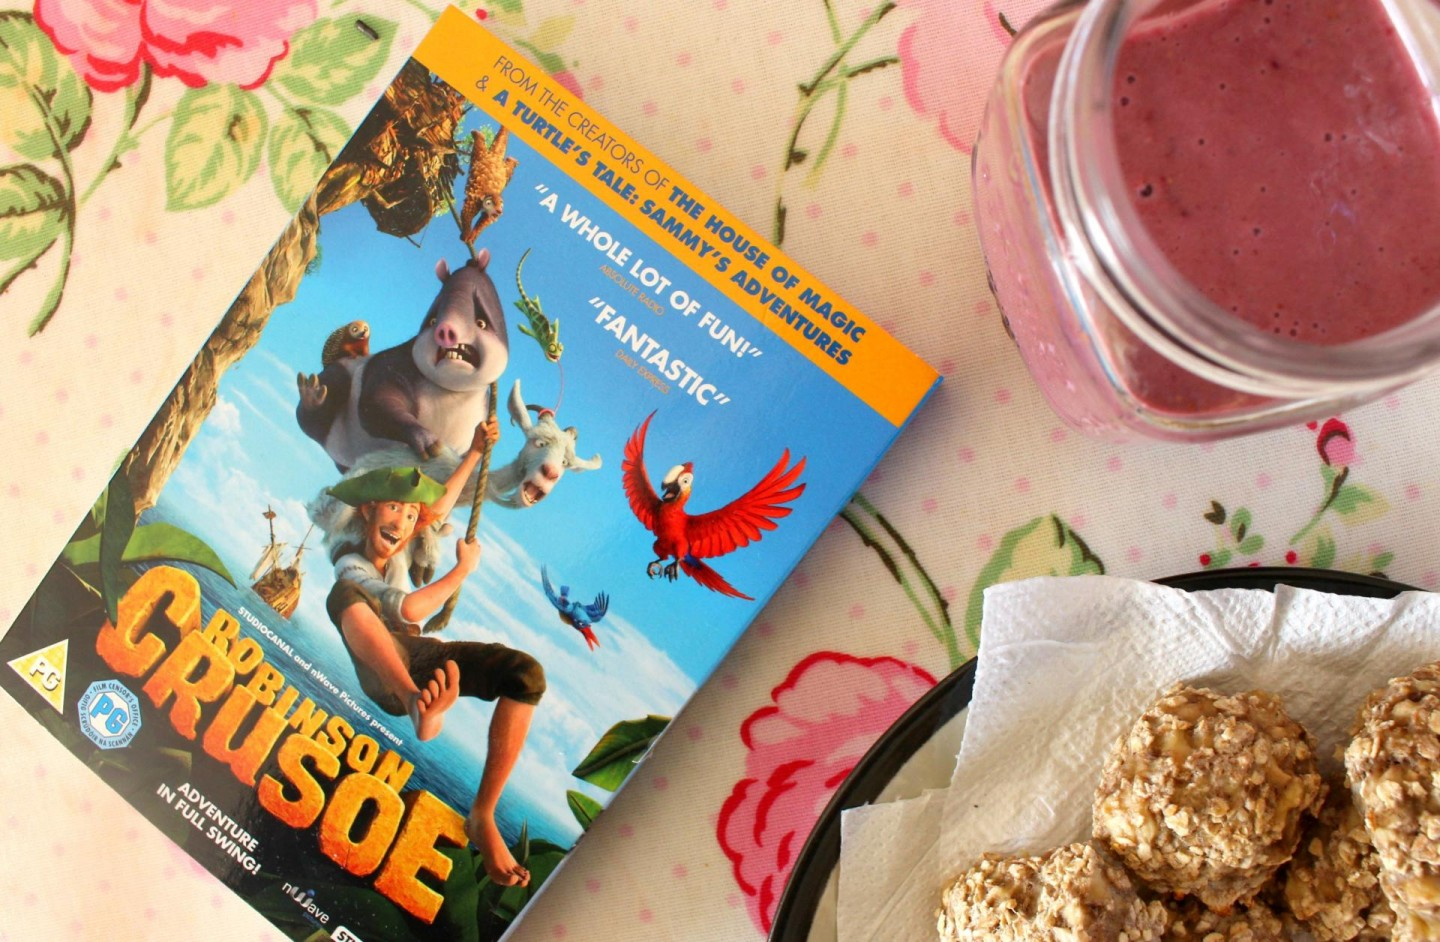 Robinson Crusoe and healthy snacks